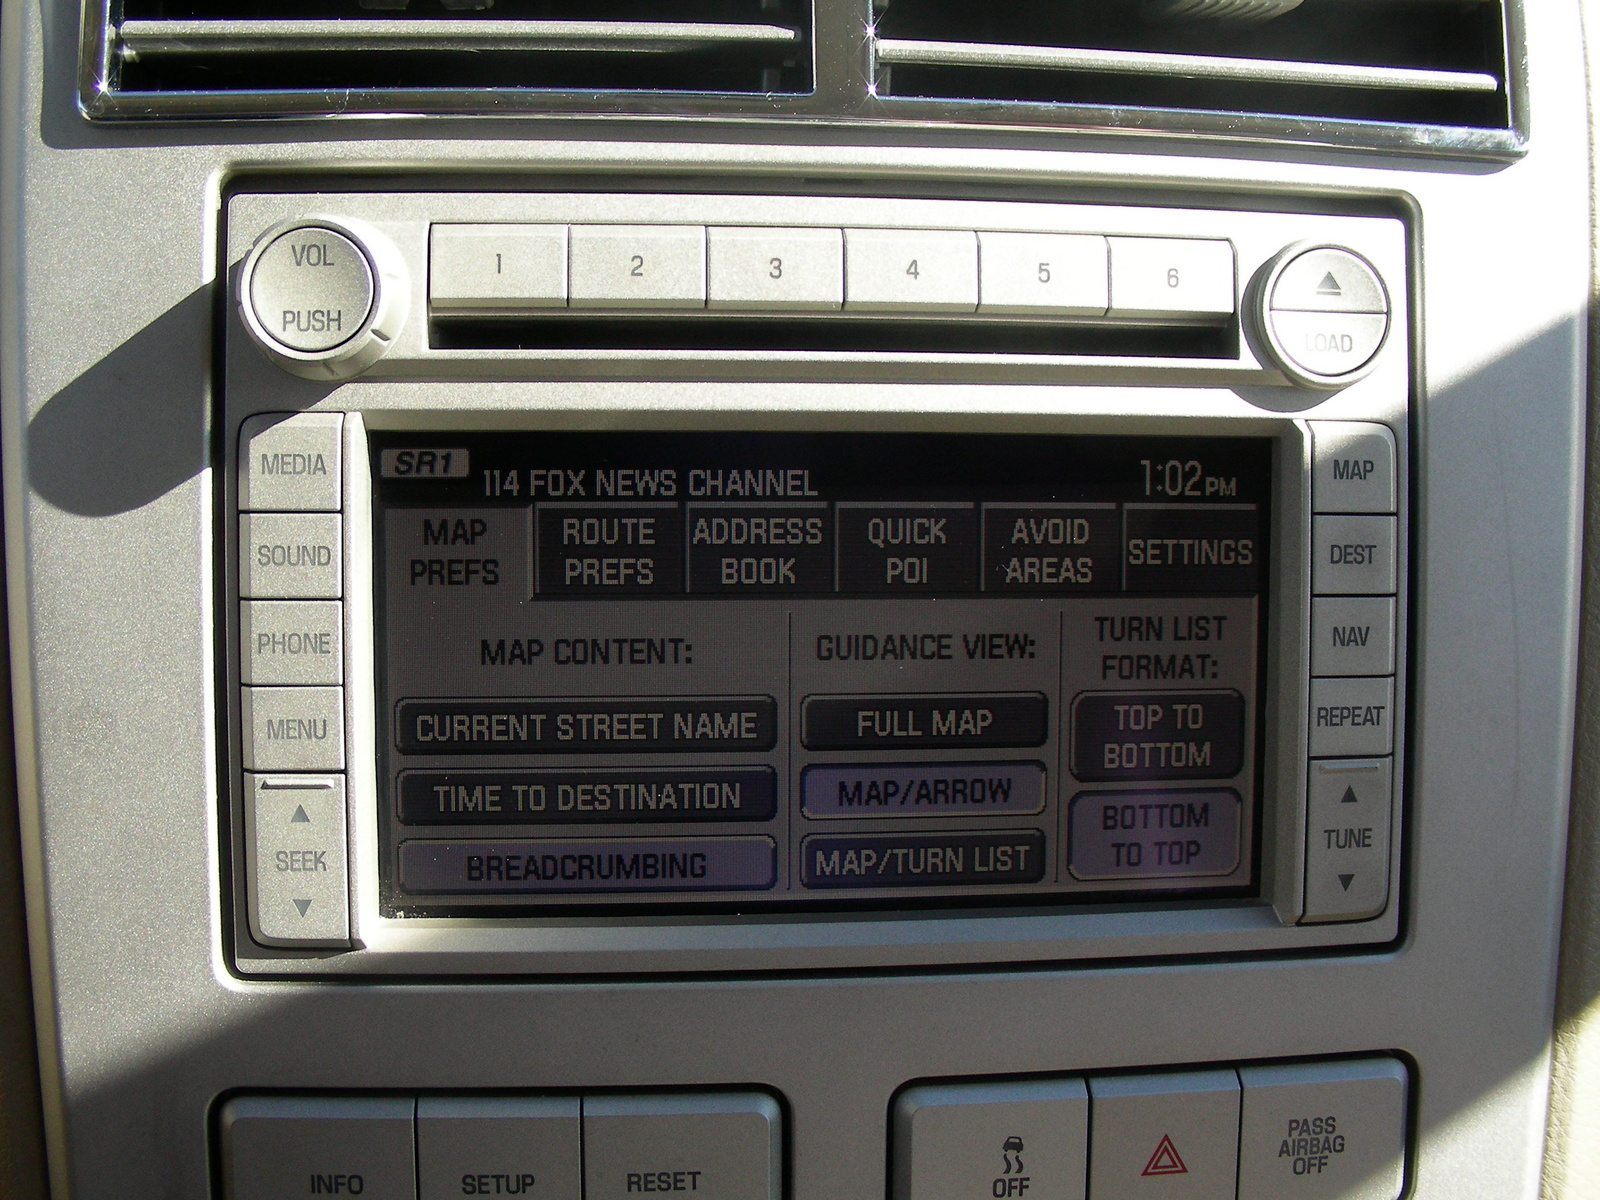 2007 Lincoln MKX AWD - Pictures - Picture of 2007 Lincoln MKX AW ...